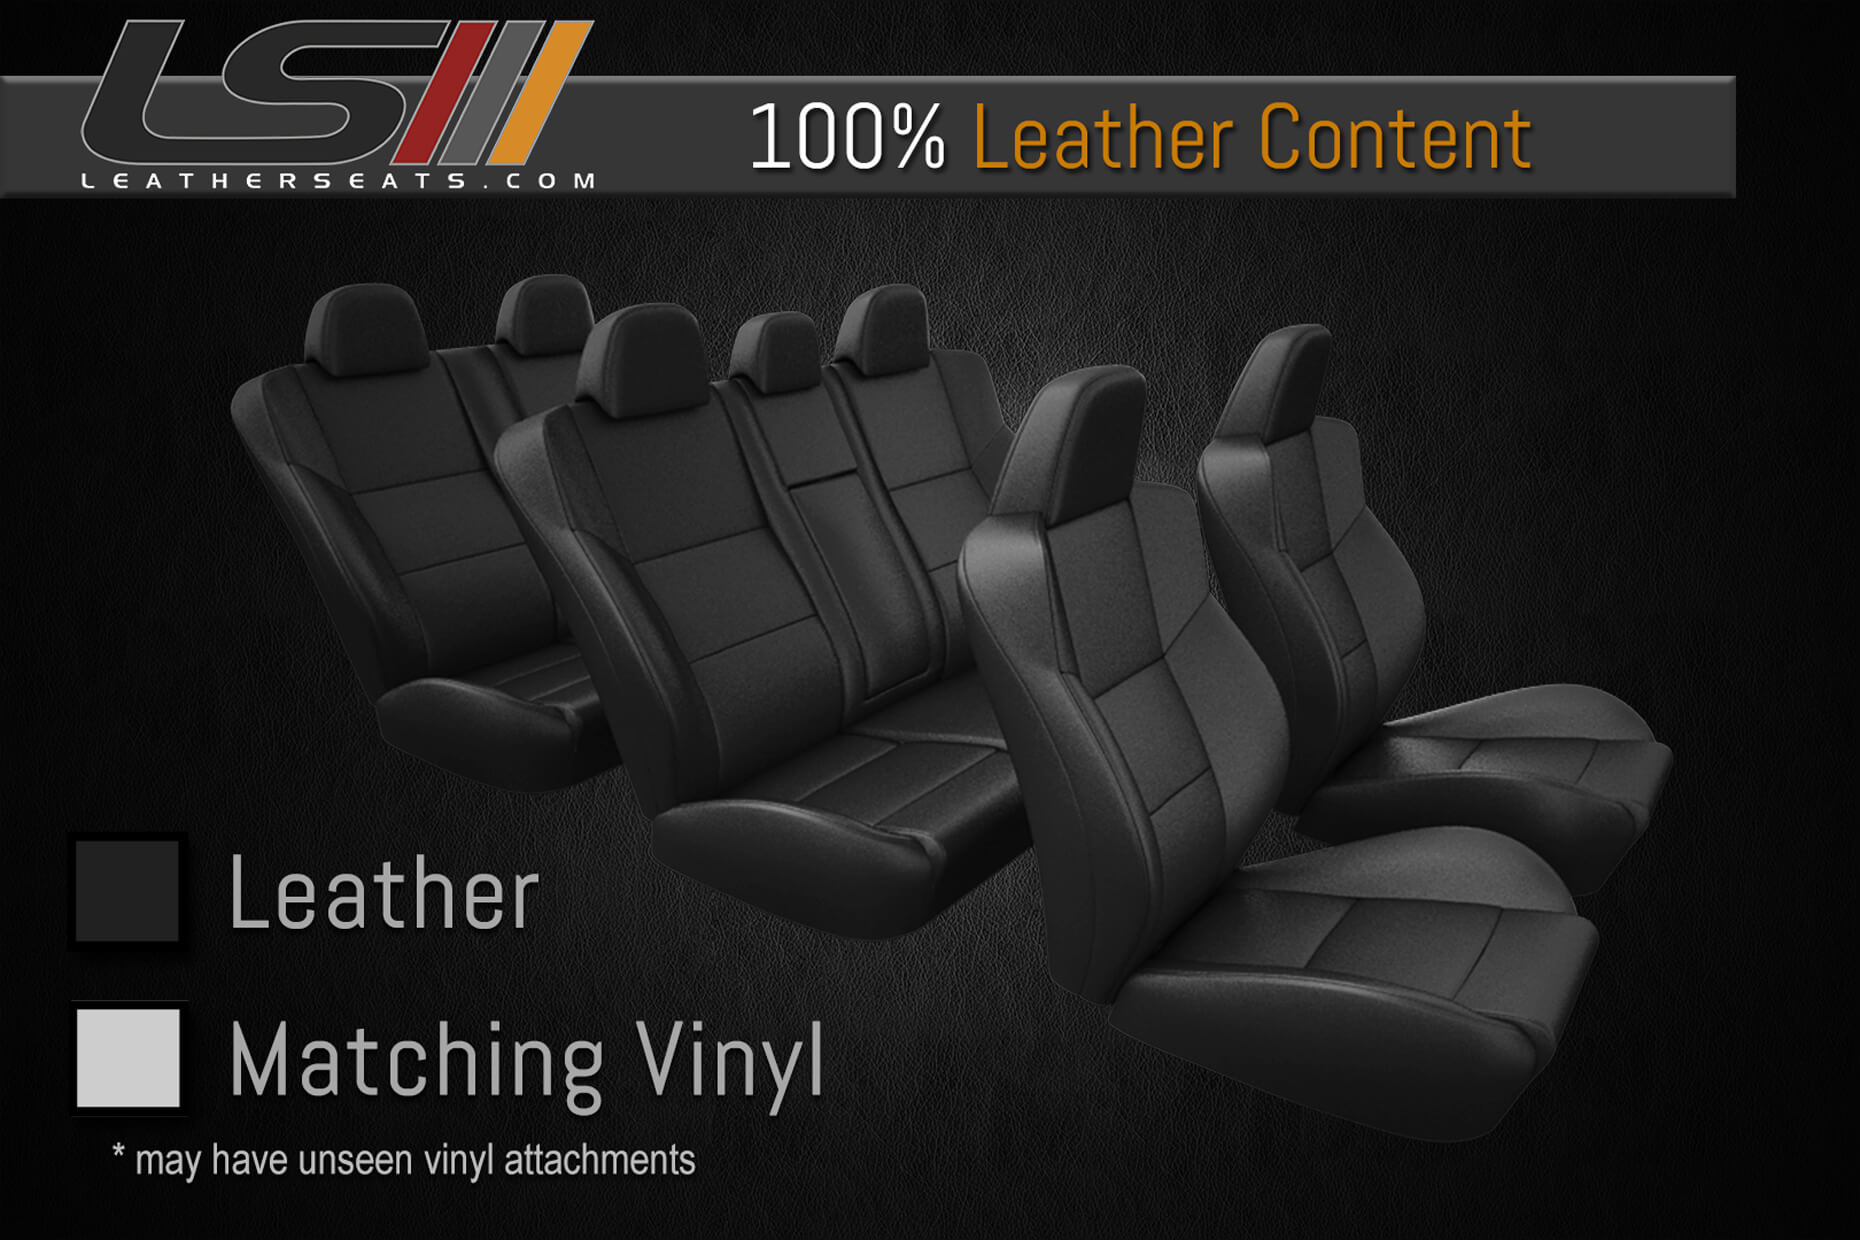 Leather Content - Three Row Interior - 100% Leather